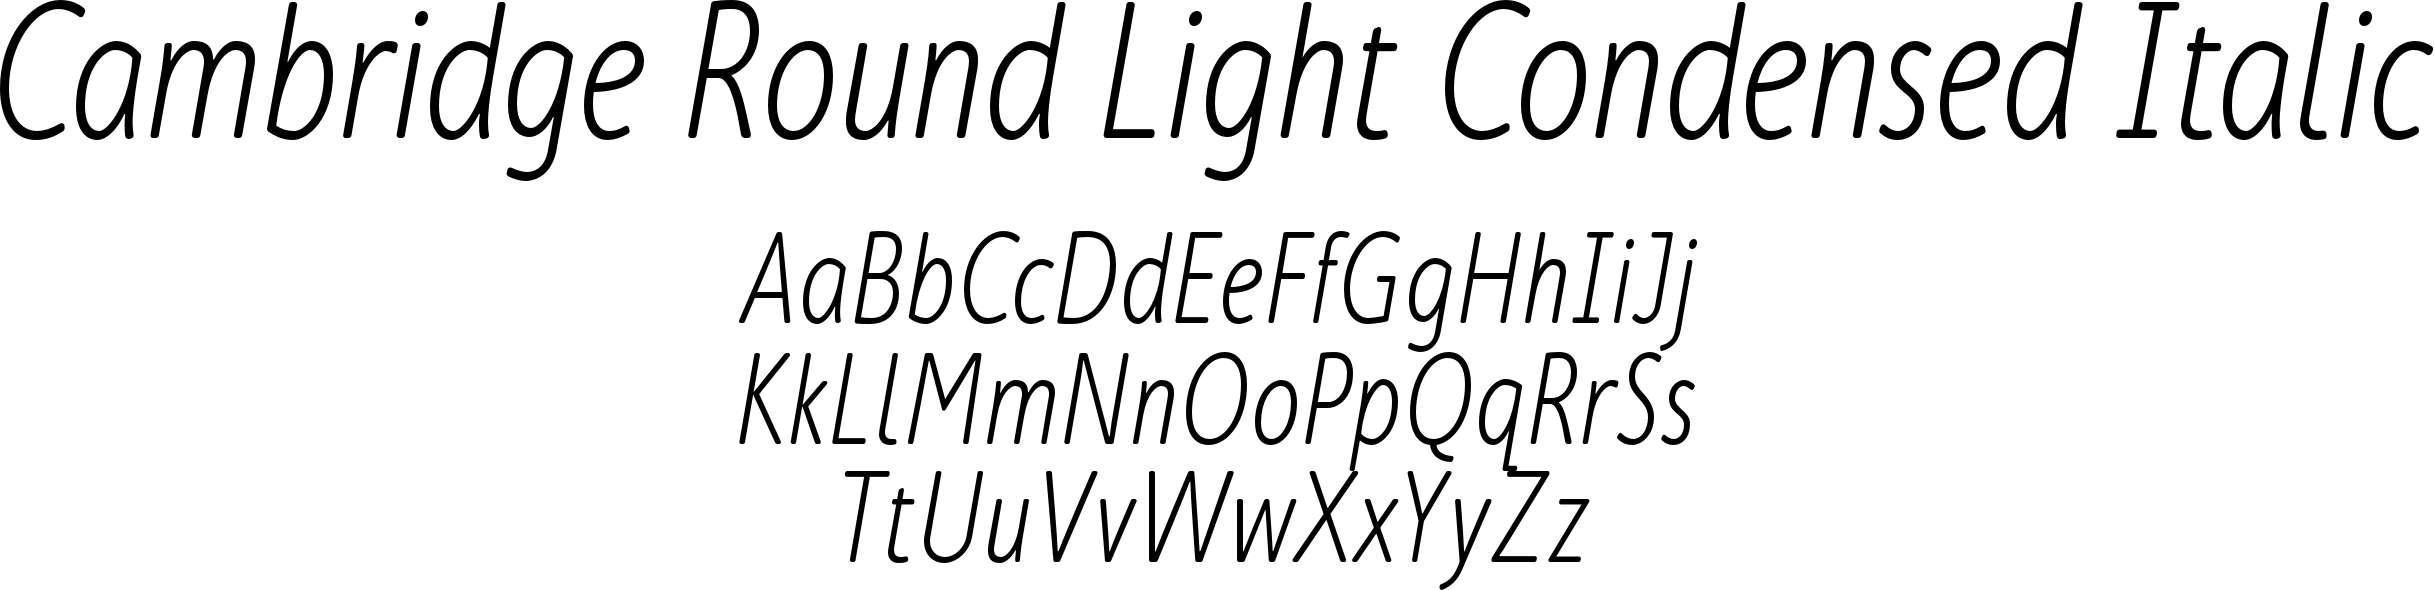 Cambridge Round Light Condensed Italic